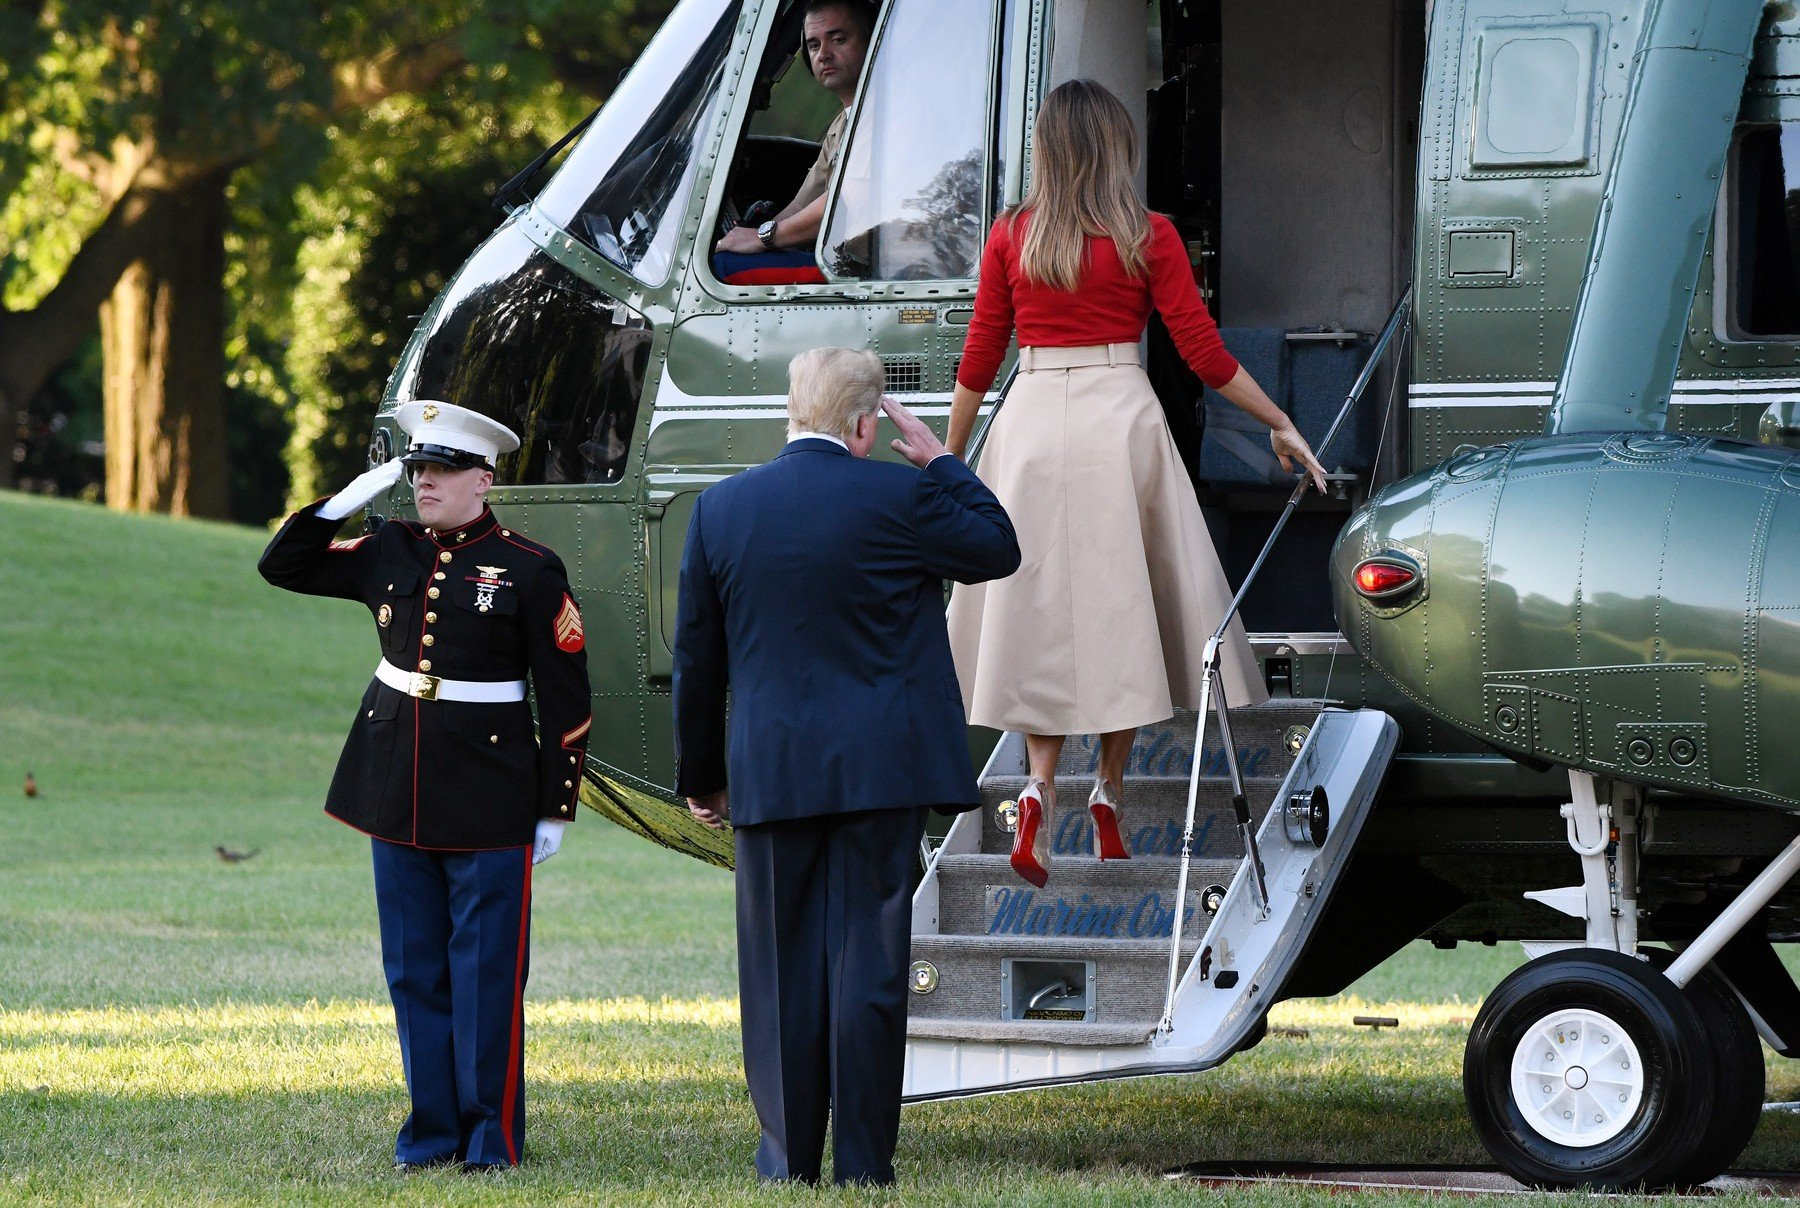 U.S. President Donald Trump and First Lady Melania Trump depart the White House en route to Brussels, Belgium, July 10, 2018 in Washington, DC., Image: 377430093, License: Rights-managed, Restrictions: , Model Release: no, Credit line: Profimedia, Abaca